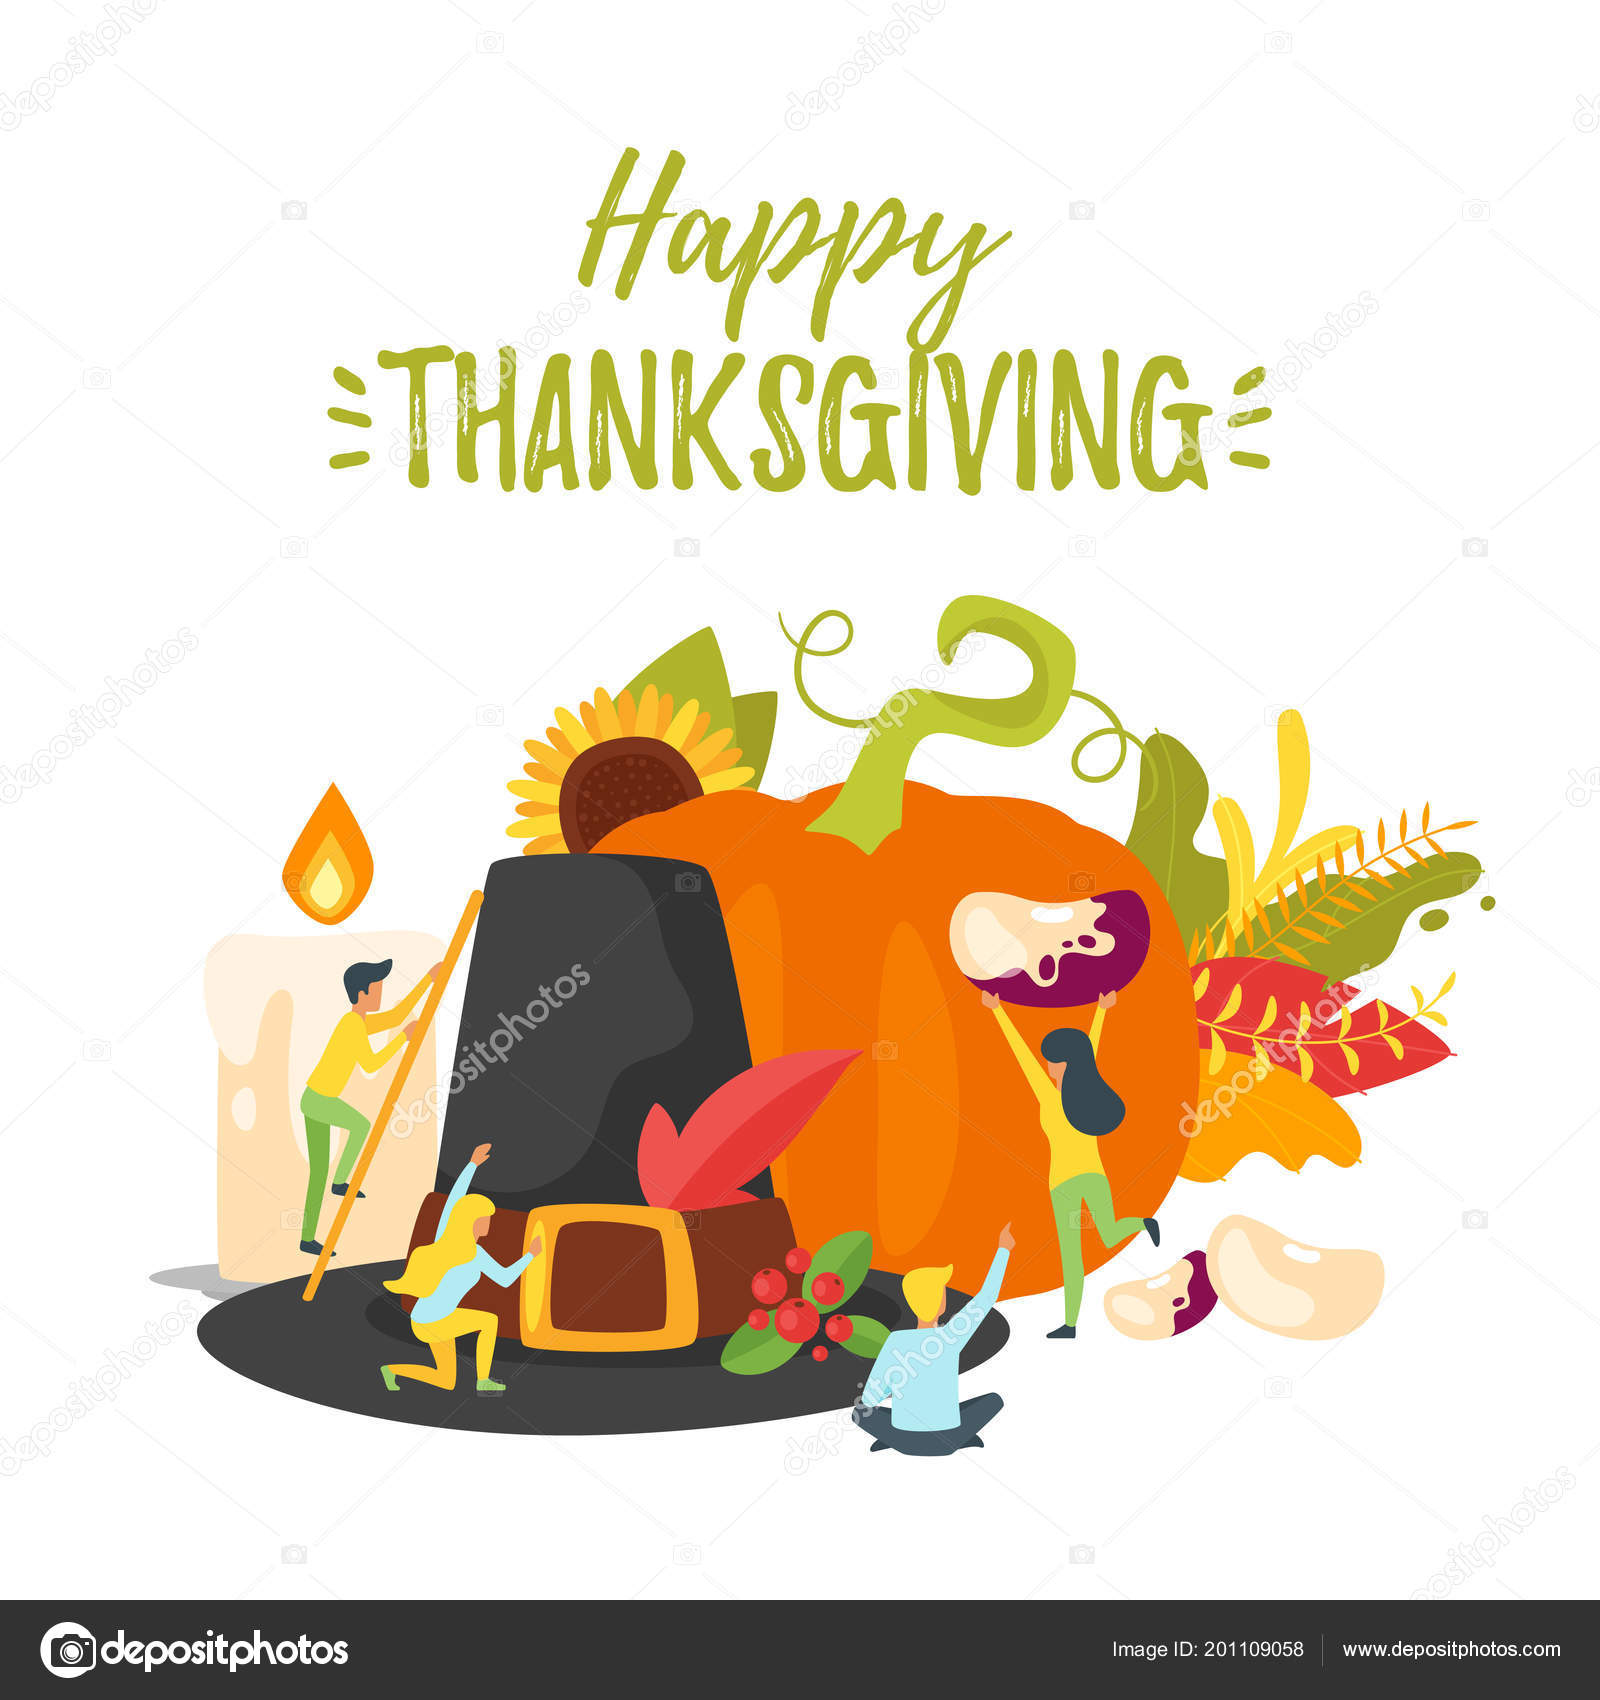 Thanksgiving Symbols With People Silhouettes Stock Vector